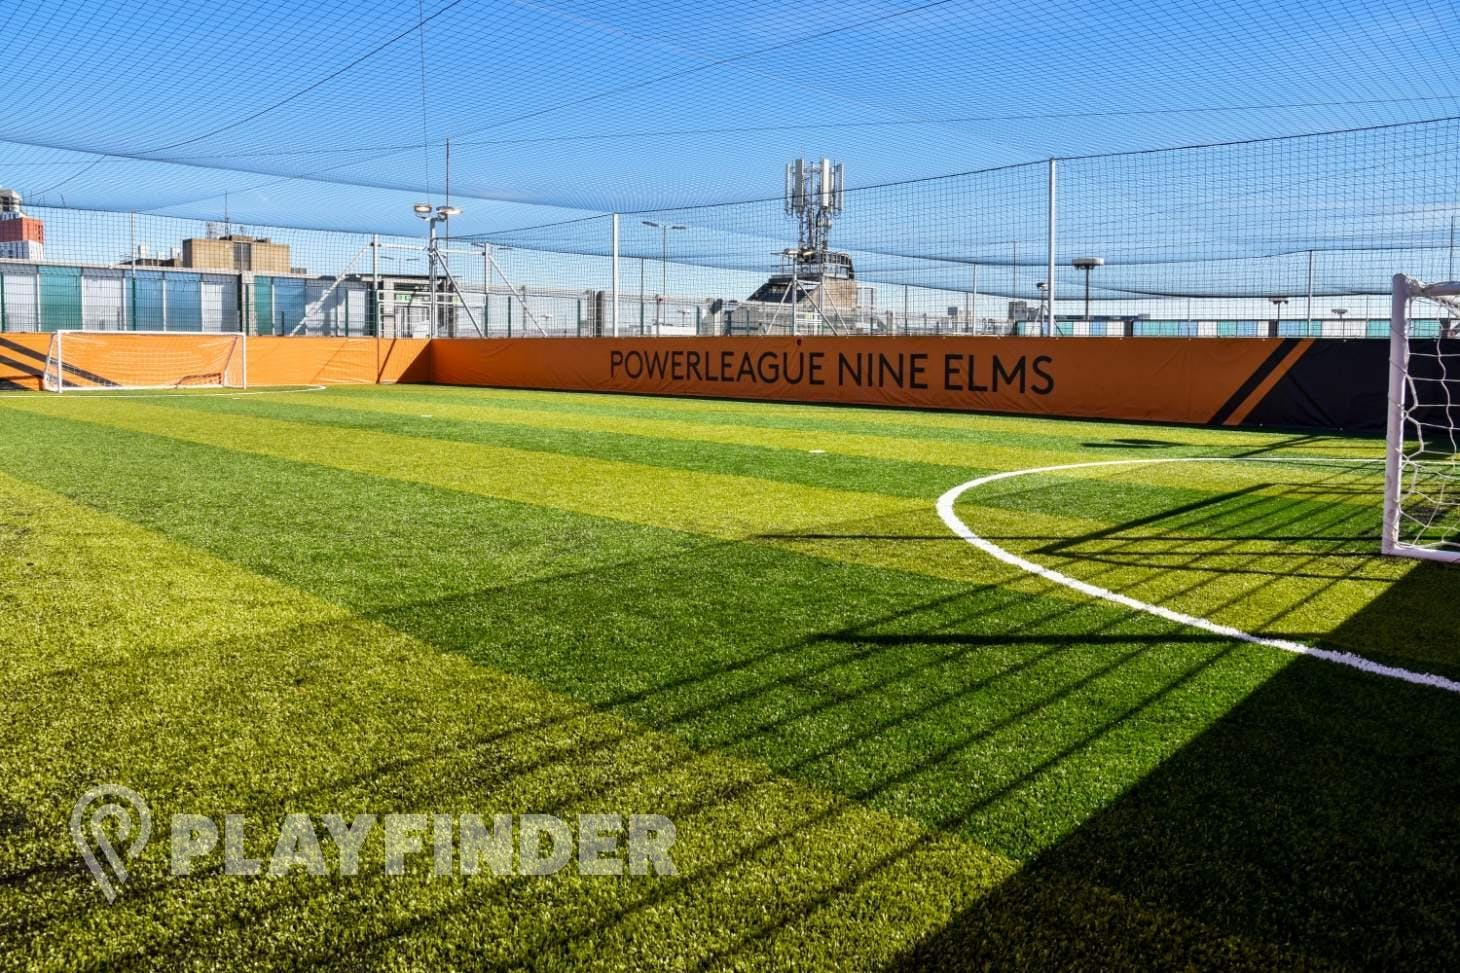 Powerleague Nine Elms 5 a side | 3G Astroturf football pitch